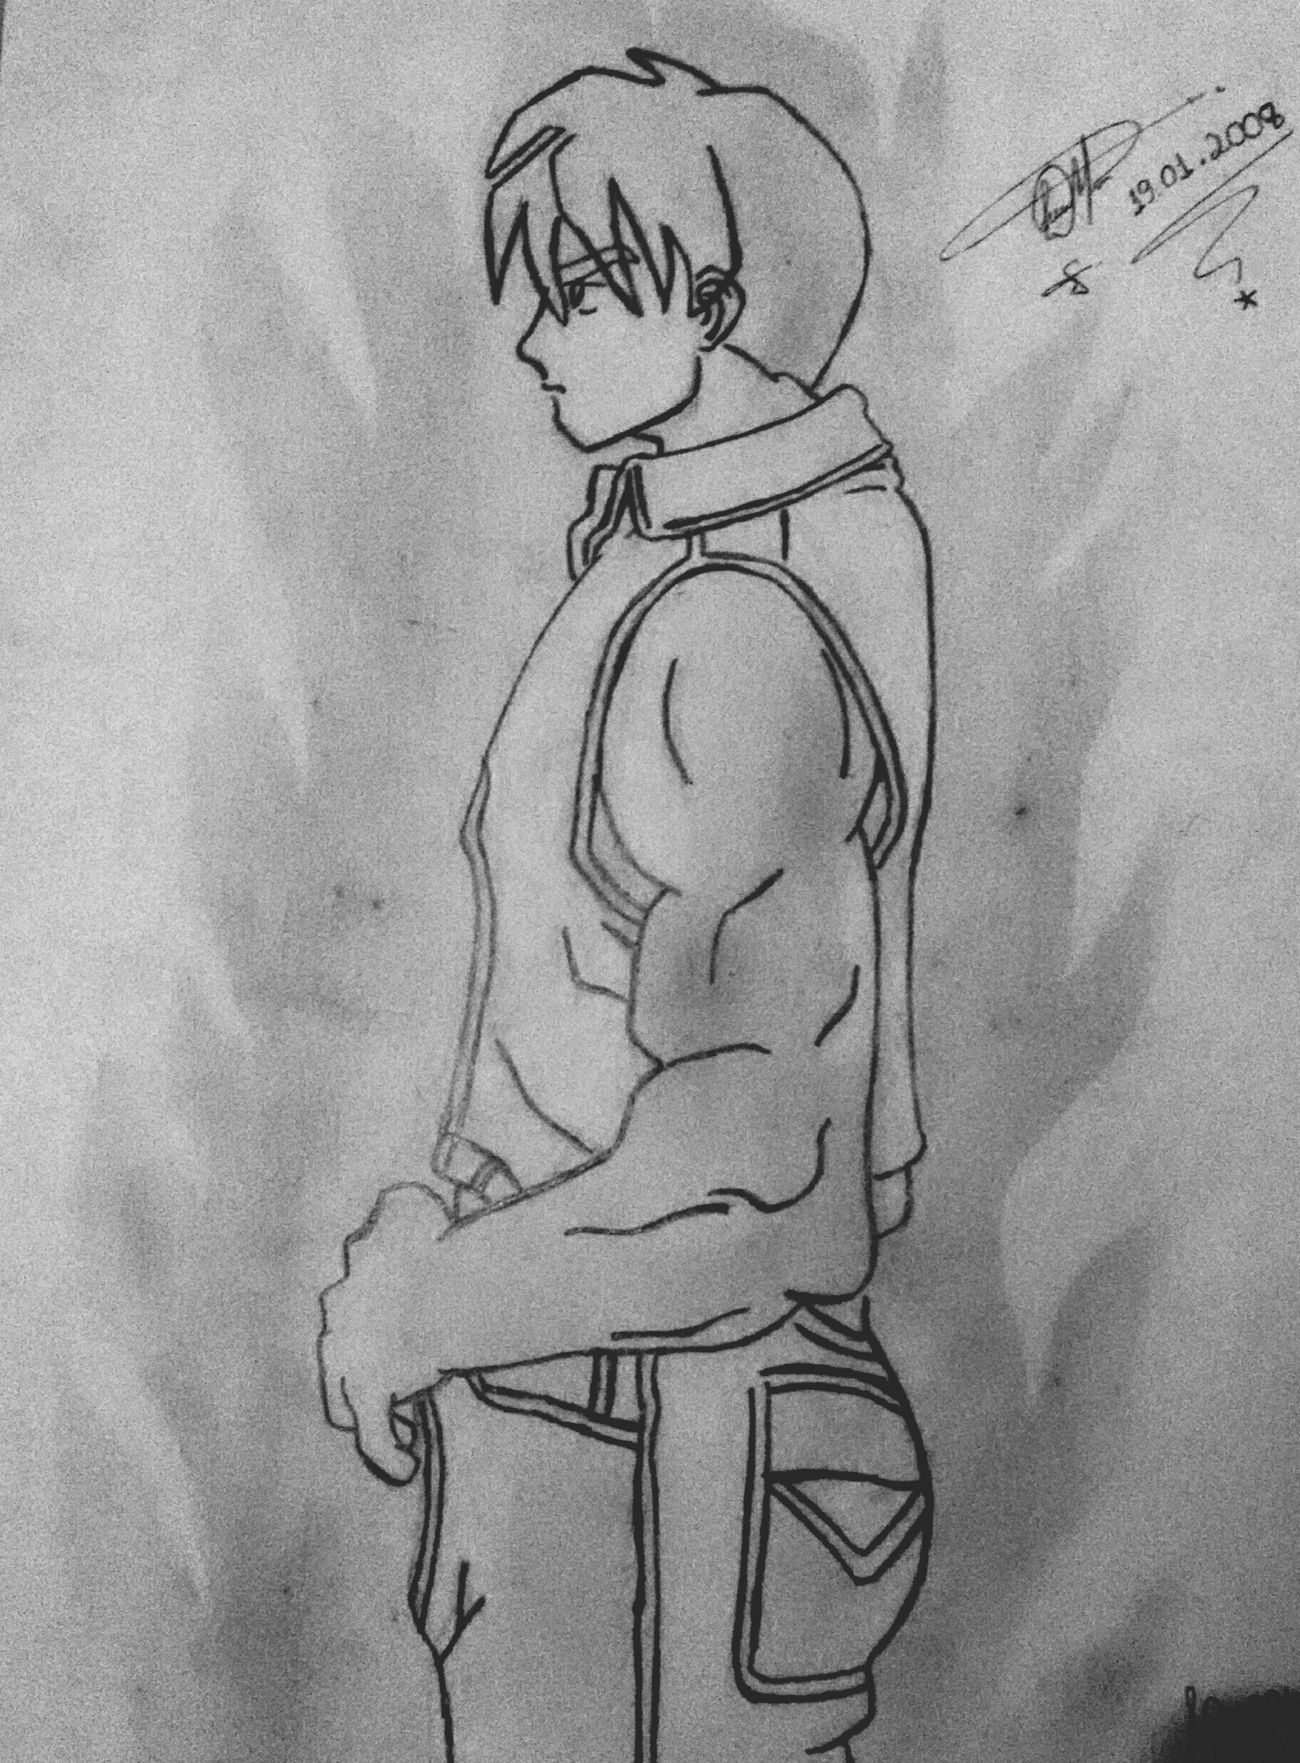 Boy Muscle Dibujo Desenho Drawing LM_colection Graphite Black & White Art Artistic